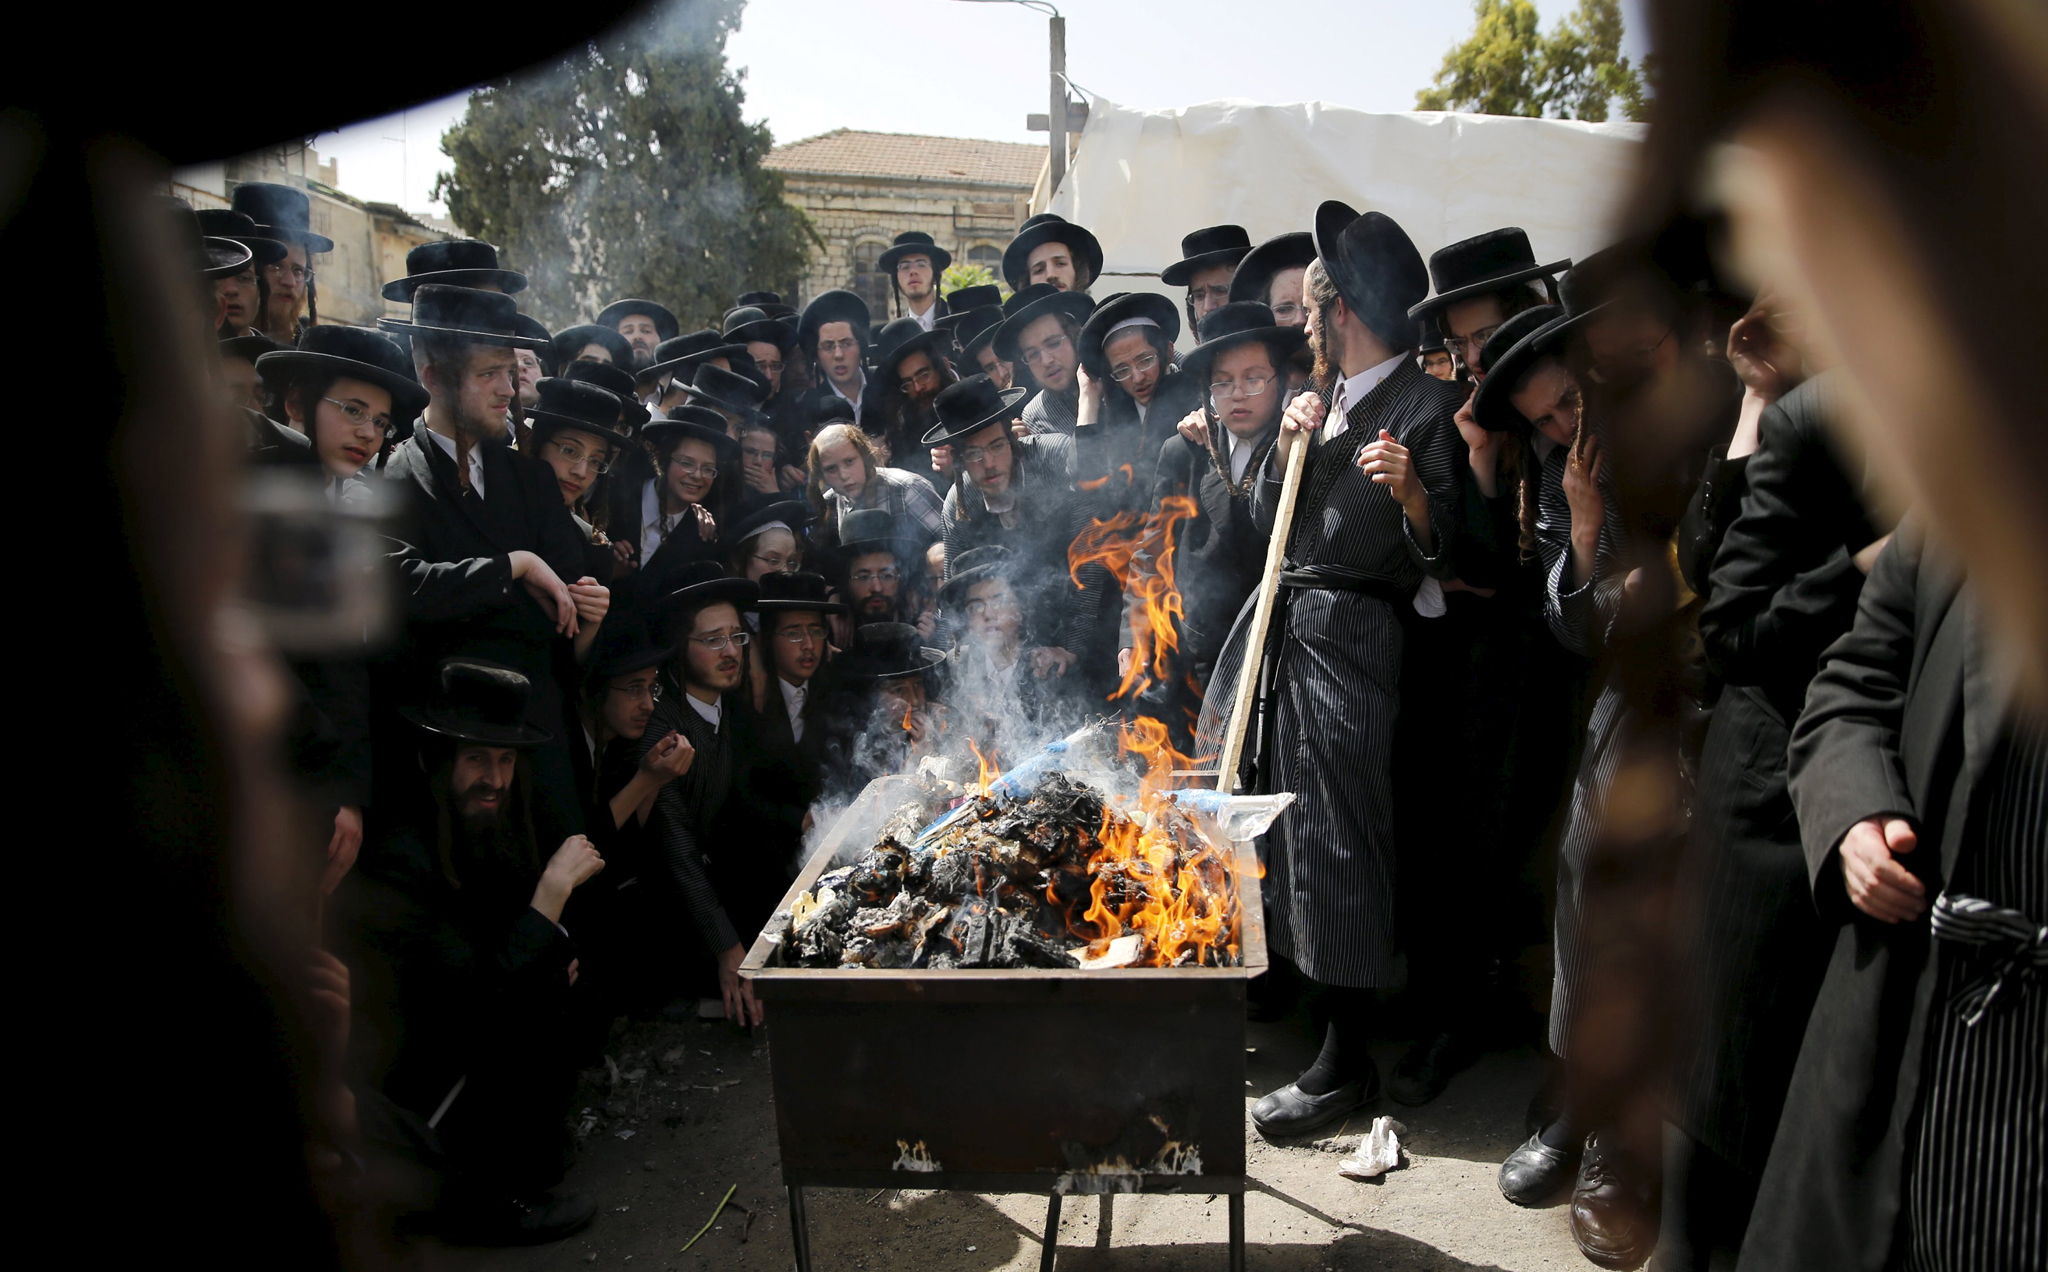 Ultra-Orthodox Jews burn leaven in the Mea Shearim neighbourhood of Jerusalem, ahead of the Jewish holiday of Passover...Ultra-Orthodox Jews burn leaven in the Mea Shearim neighbourhood of Jerusalem, ahead of the Jewish holiday of Passover, April 22, 2016. REUTERS/Ammar Awad